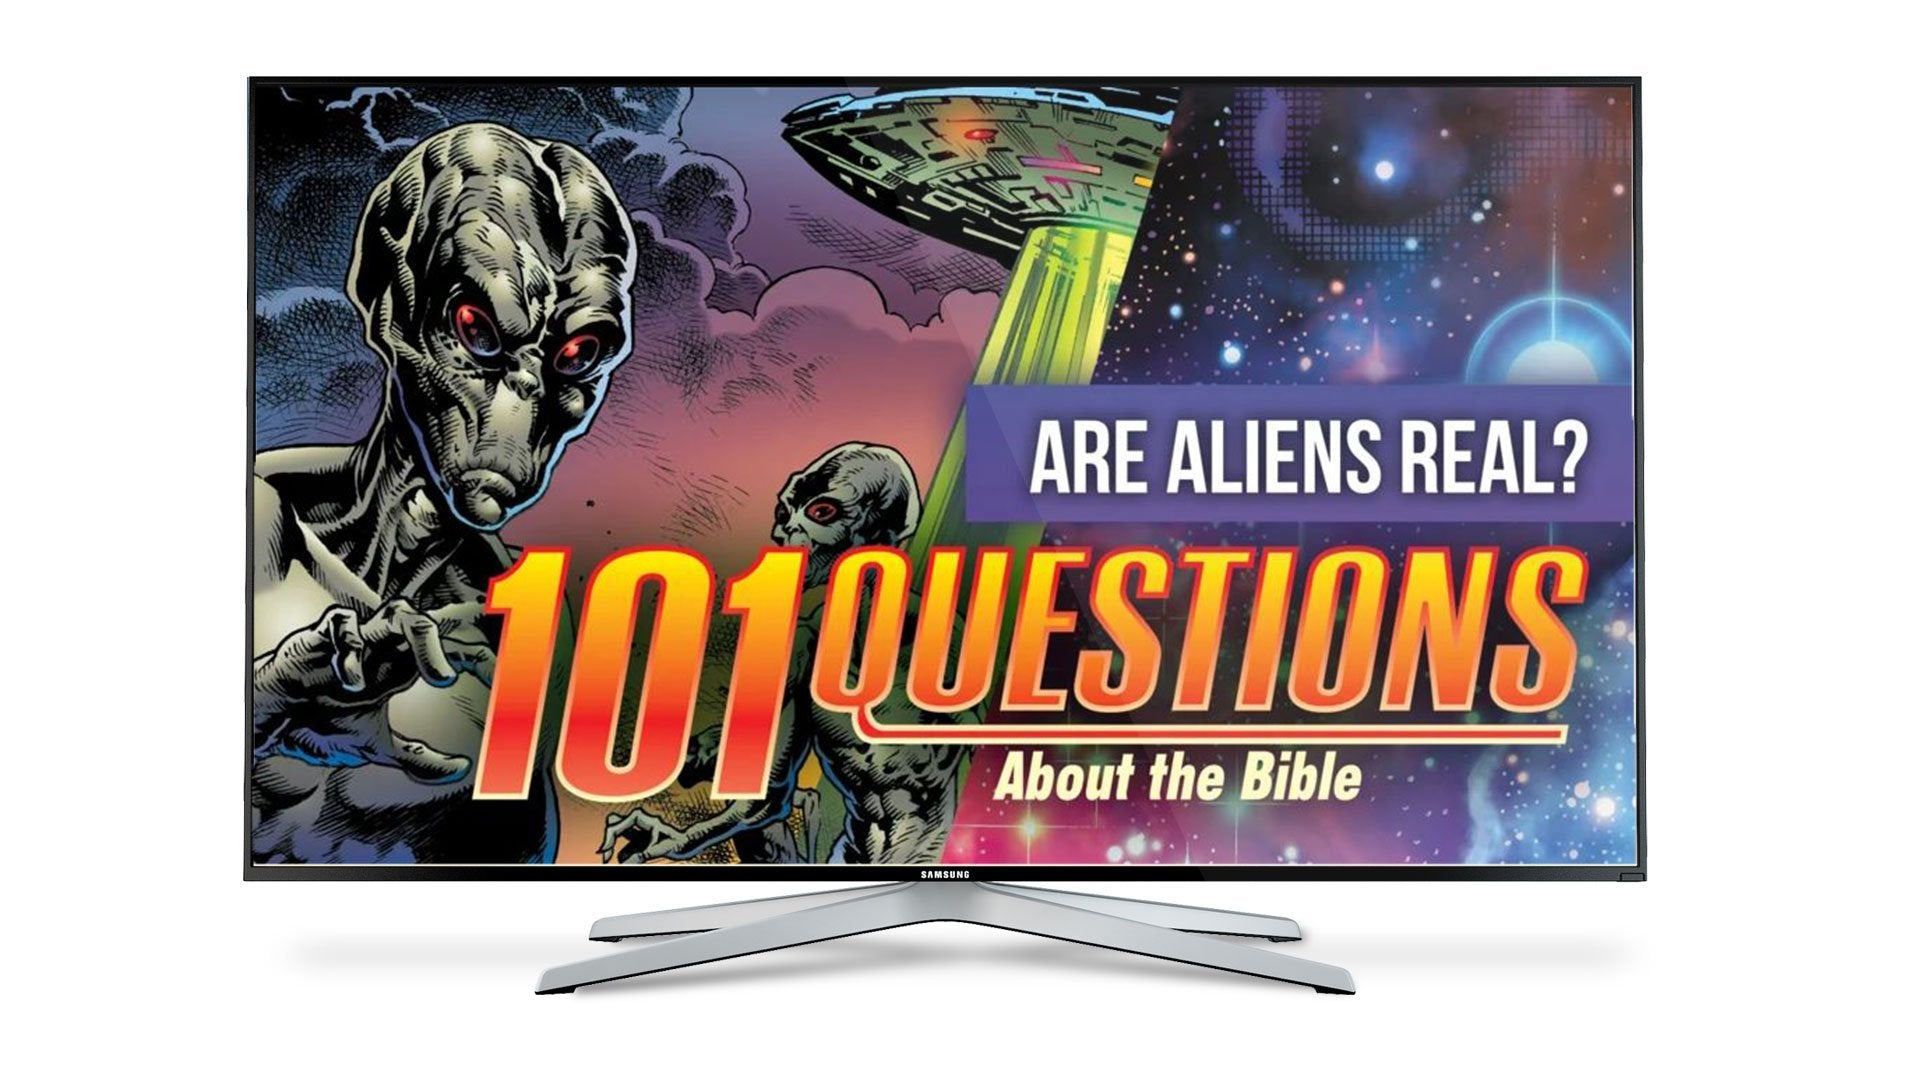 101 Questions: #7 What Does the Bible Say About Aliens?